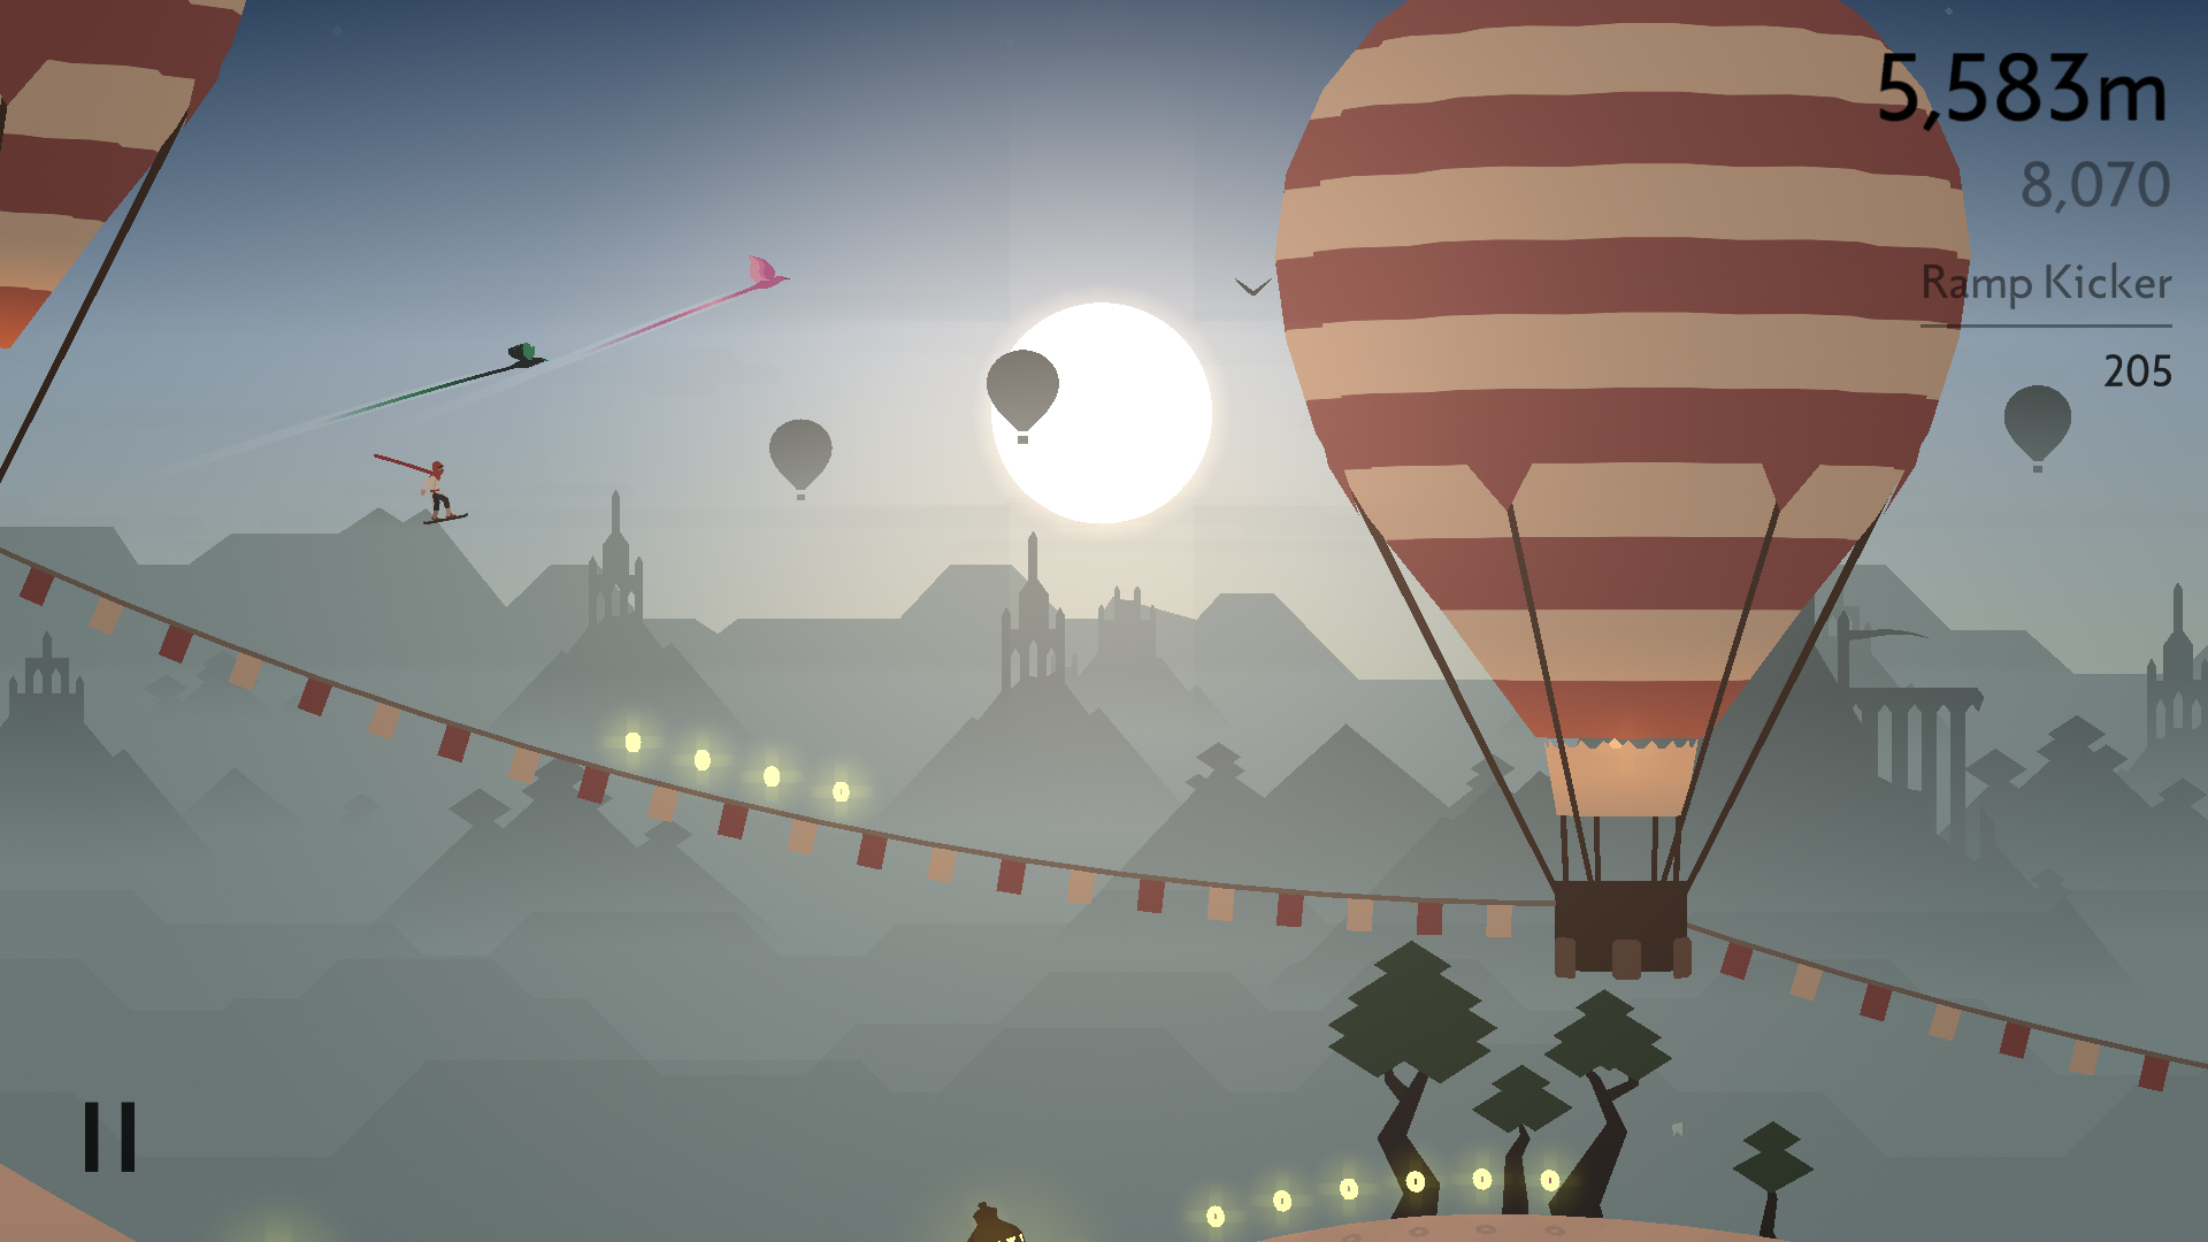 mvvhvKtbUX3SJyn8ppVo4 - The best free Android games 2019